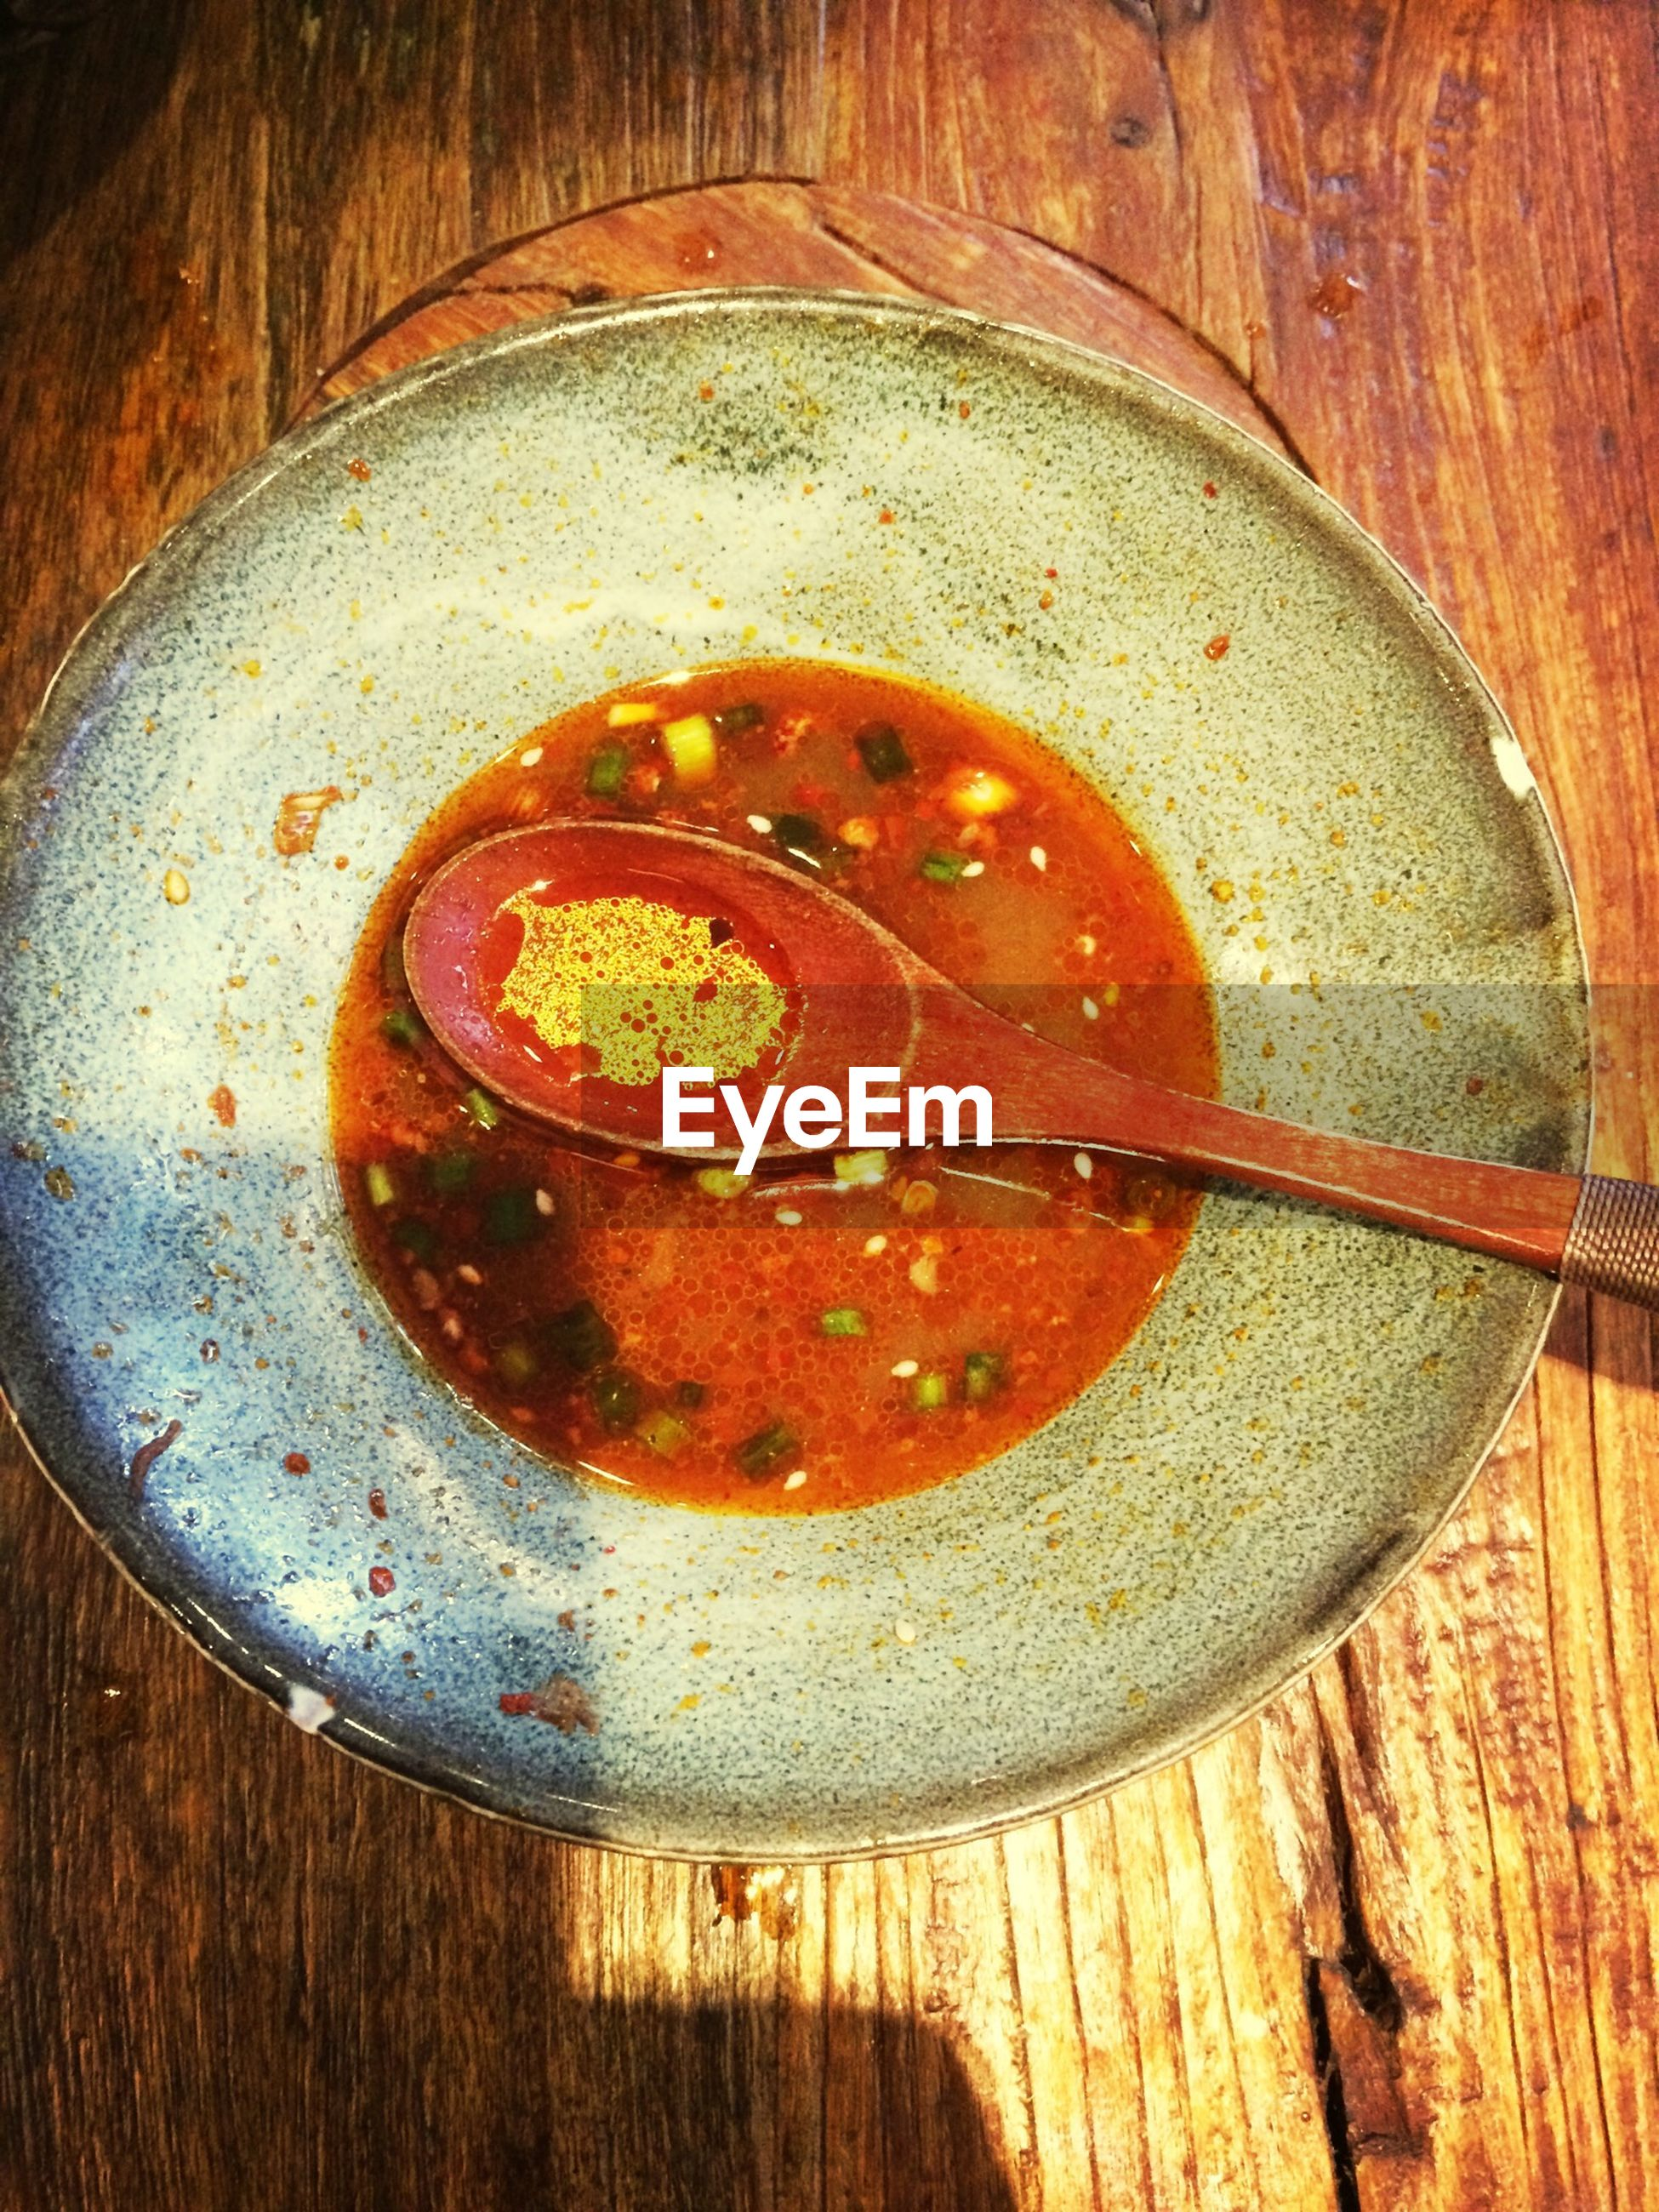 food and drink, freshness, food, indoors, directly above, healthy eating, still life, wood - material, table, close-up, high angle view, wooden, bowl, ready-to-eat, no people, wood, slice, red, overhead view, indulgence